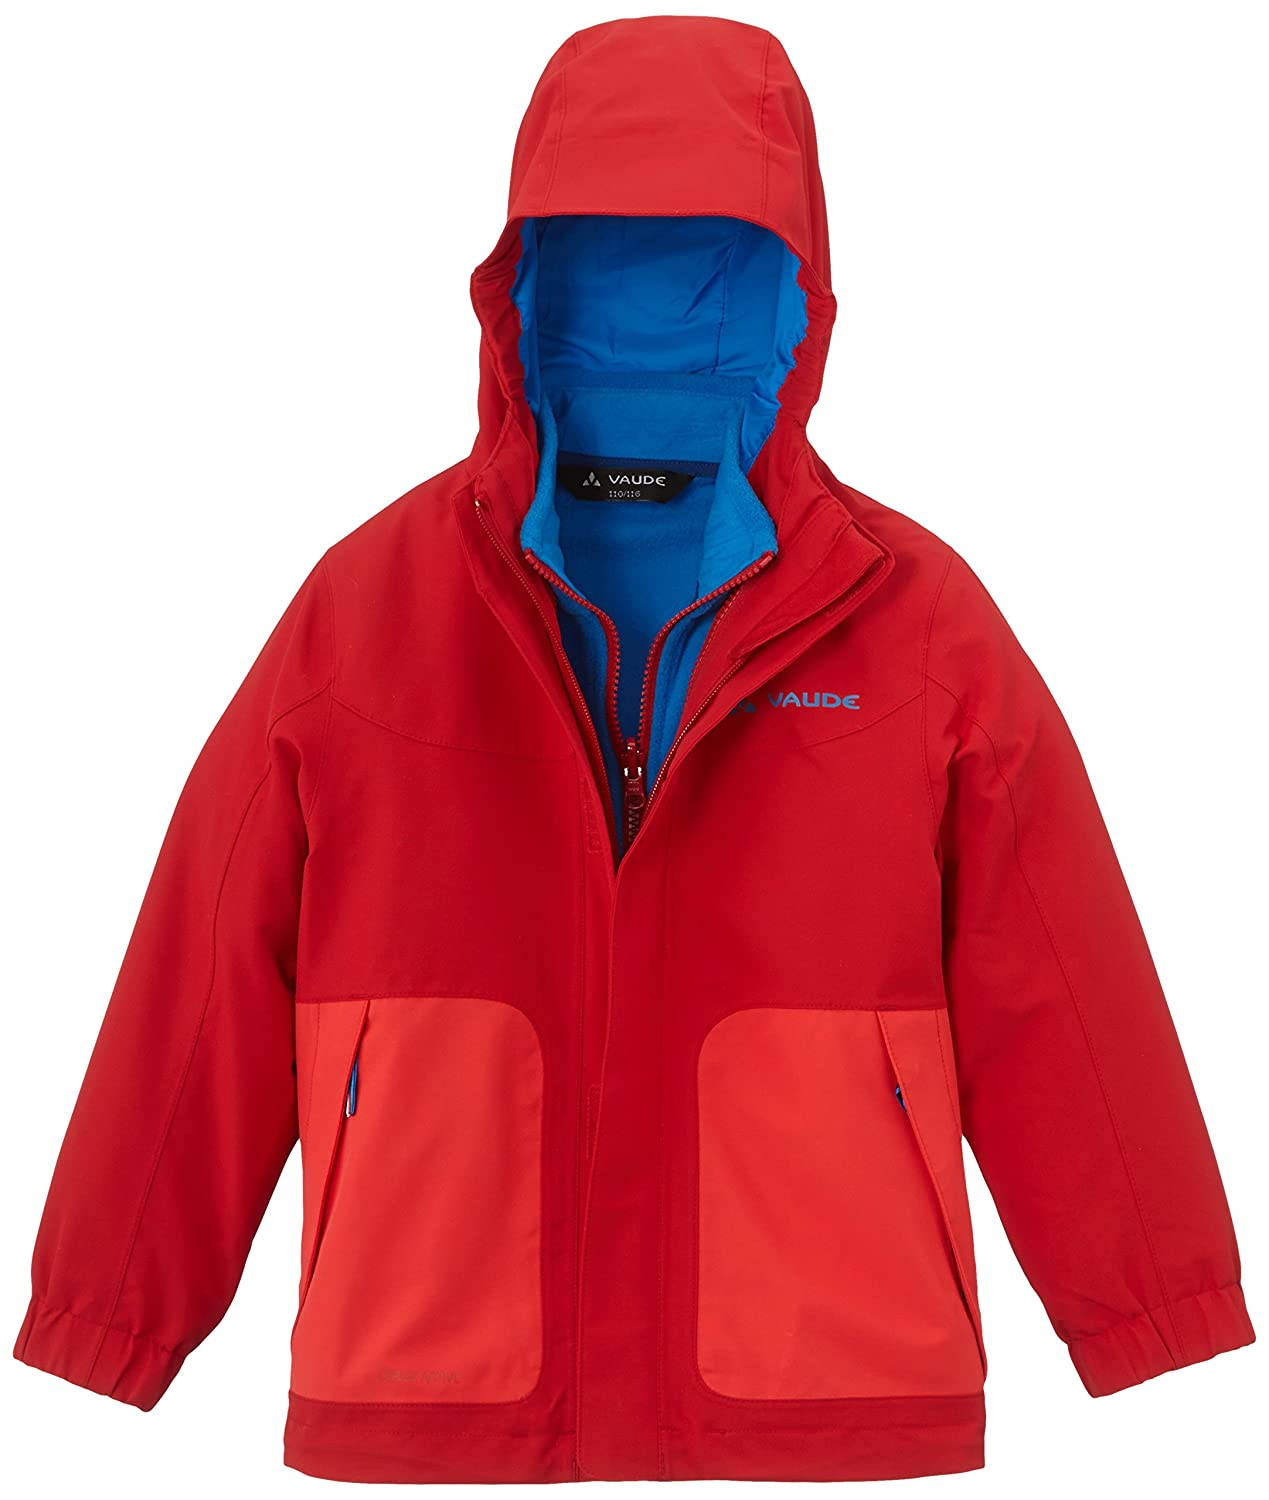 Bambini 05381 VAUDE Camp Fire 3/in1/Giacca IV Doppia